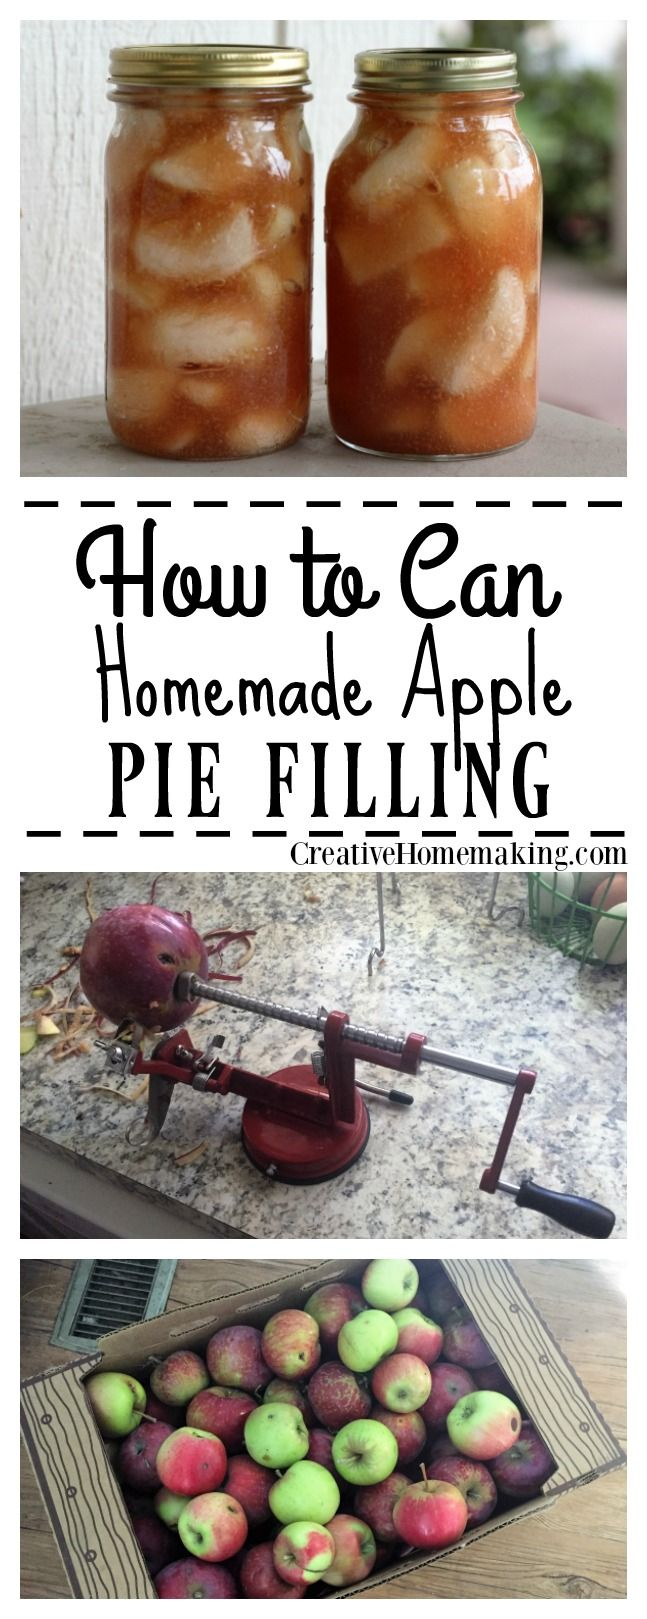 Easy instructions for making and canning homemade apple pie filling from fresh apples.